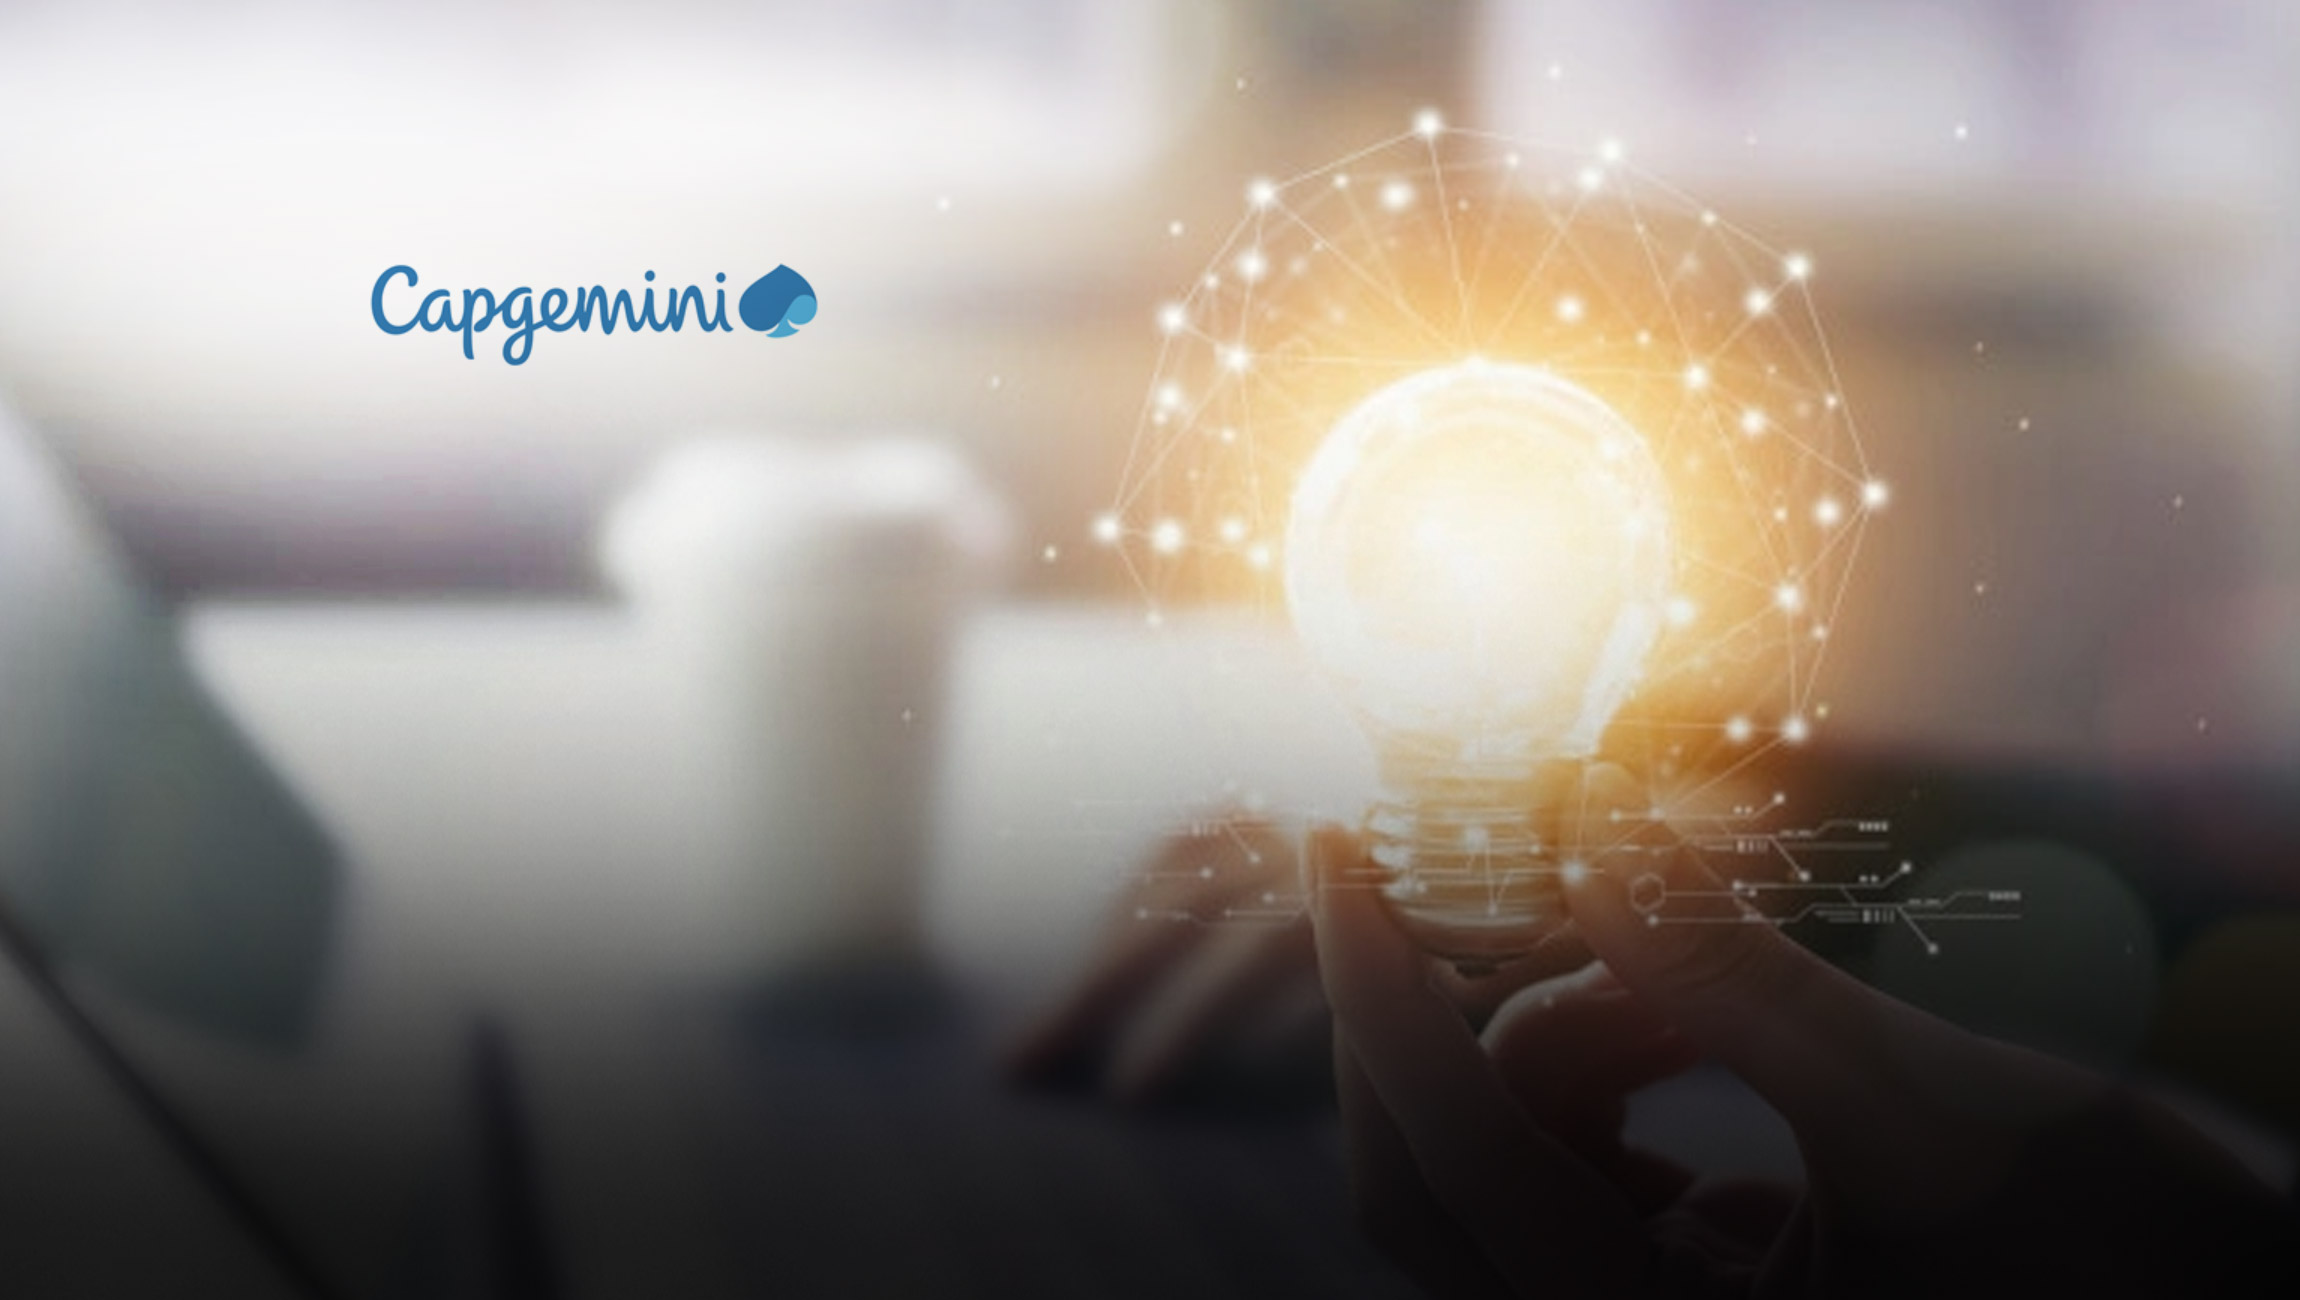 HFS Research Commends Capgemini on Its Innovative Solutions in the Healthcare Payer Sector